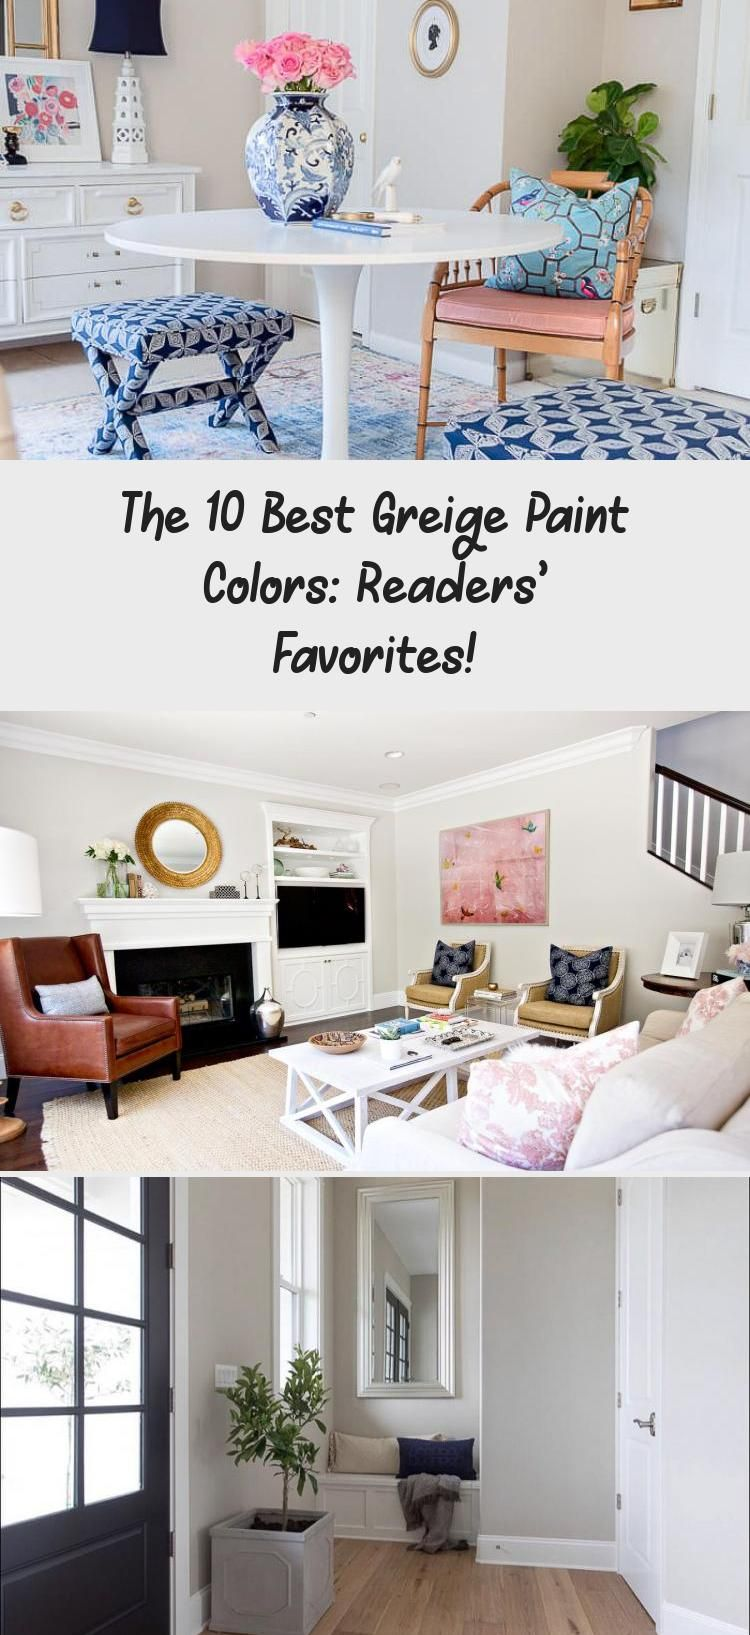 the 10 best greige paint colors readers favorites on 10 most popular paint colors id=75333